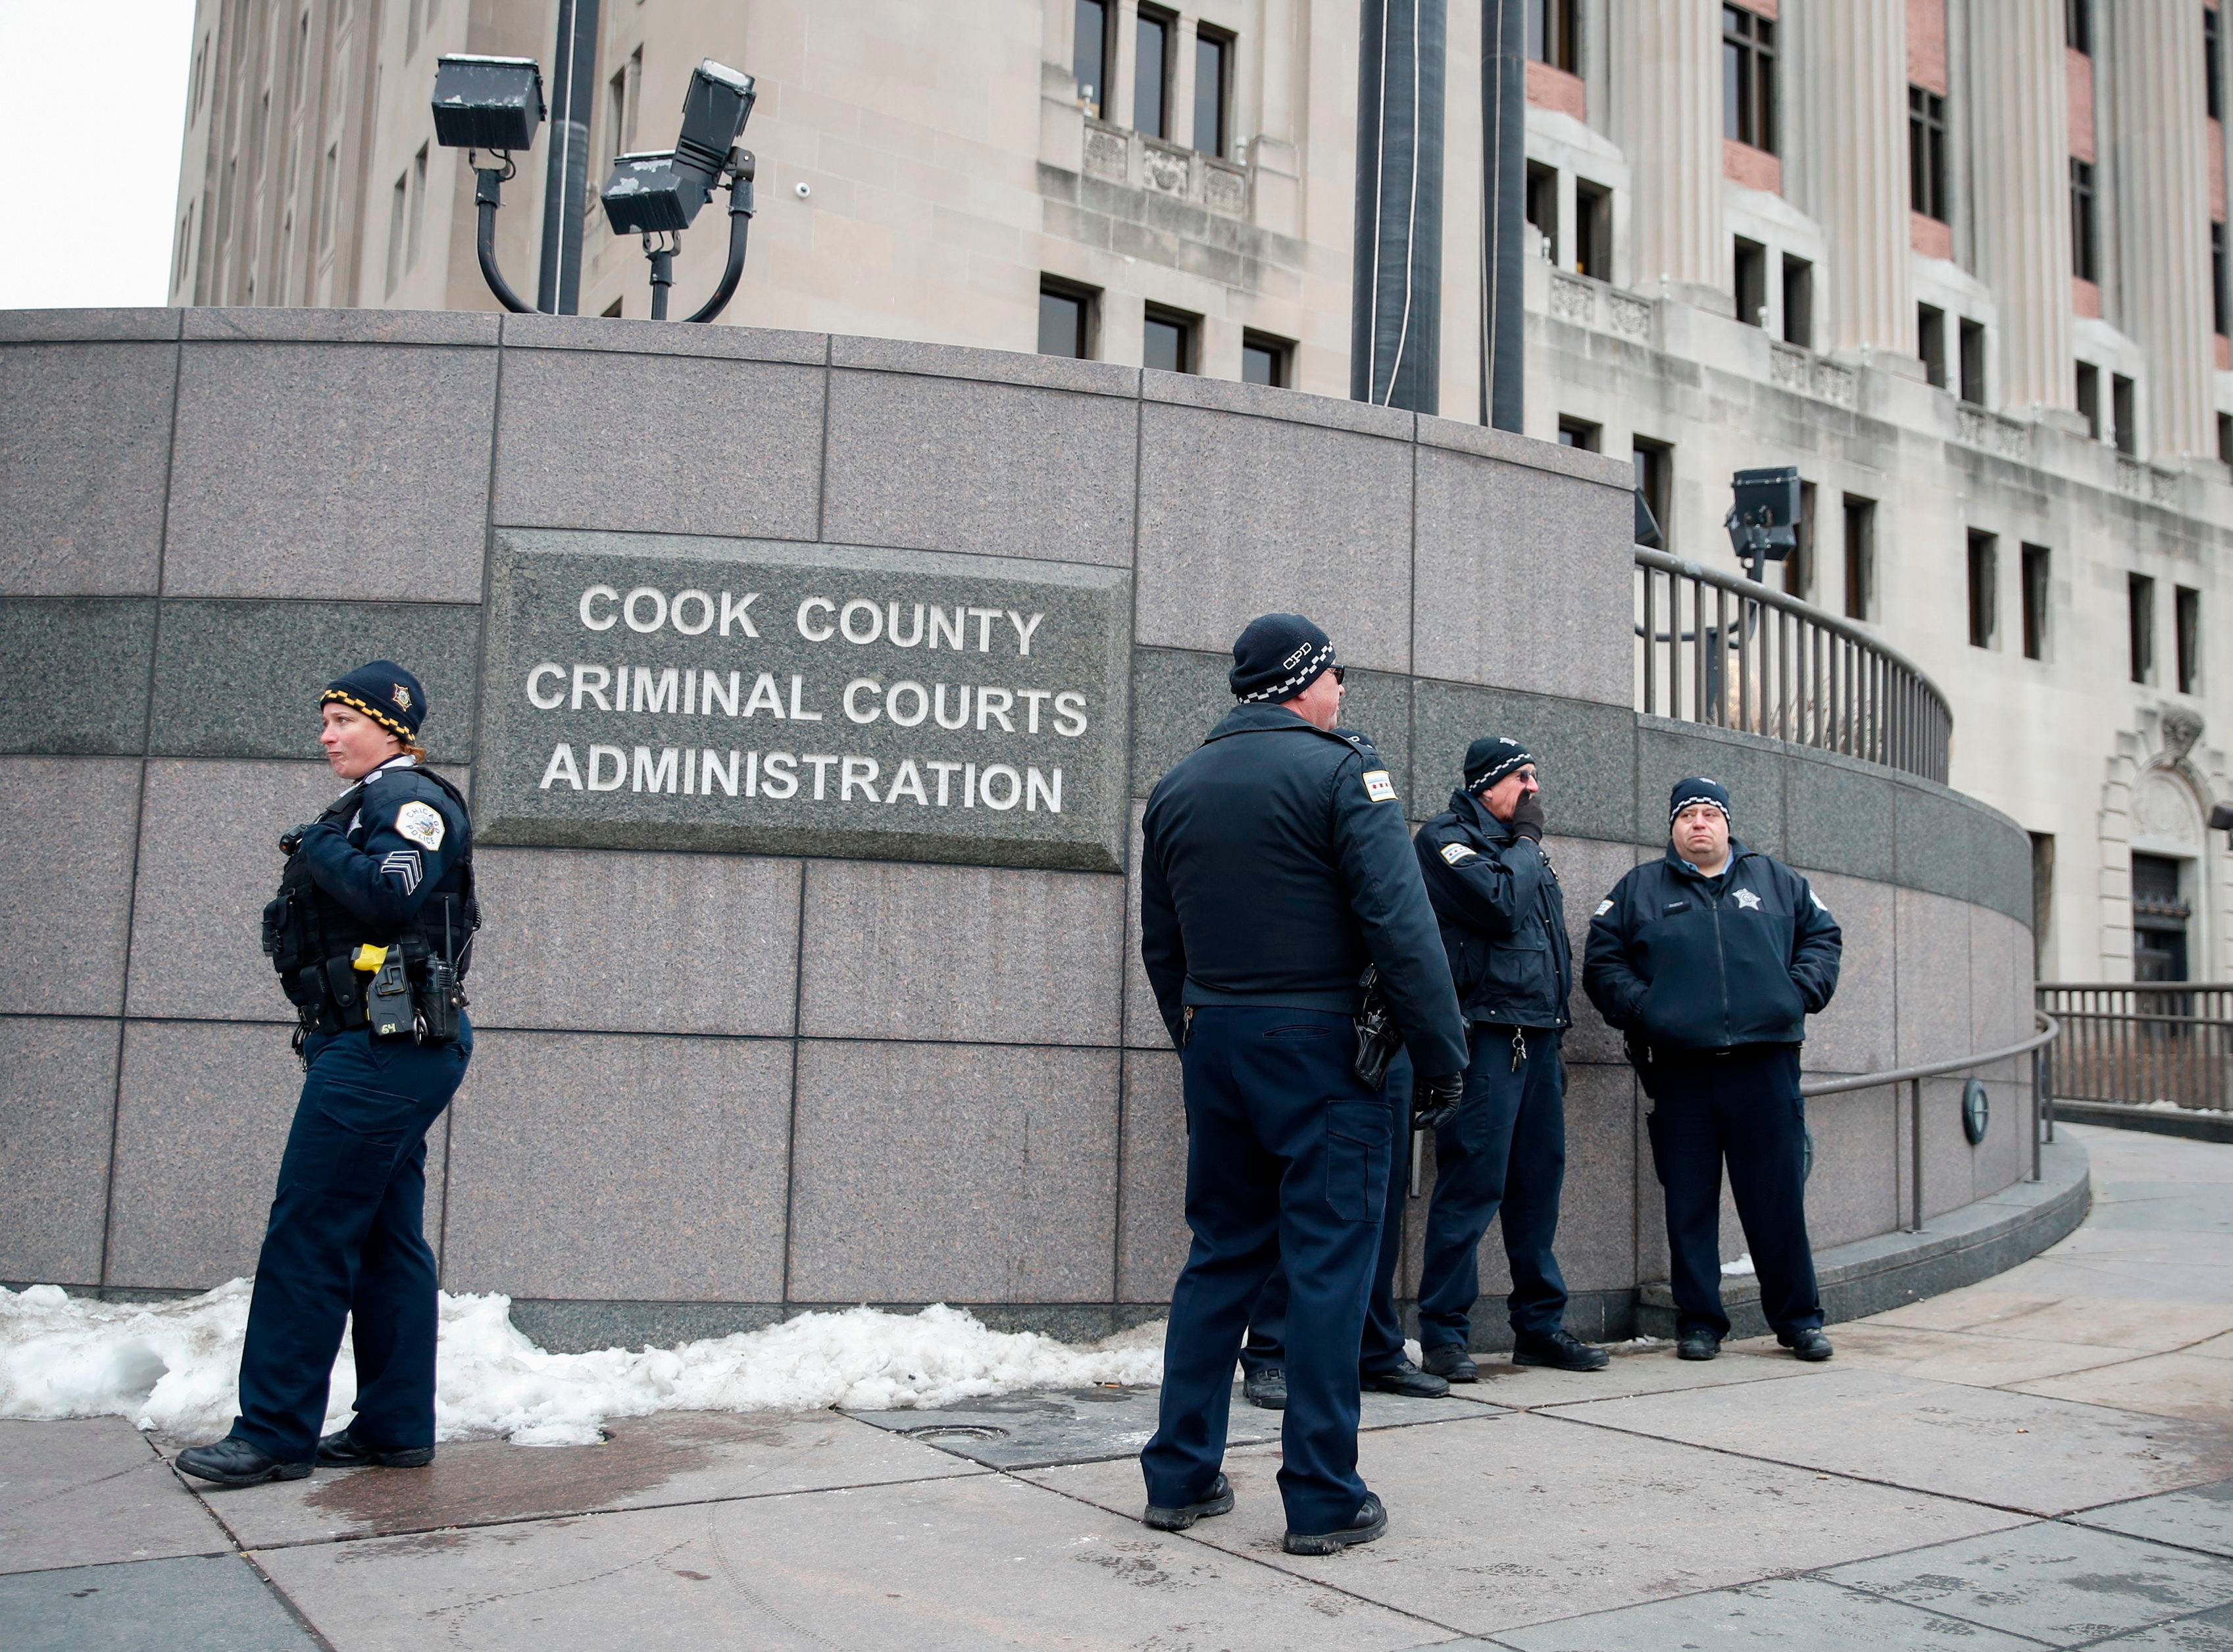 Chicago Police Officers guard the area outside of the Leighton Criminal Courts Building during the sentencing of the Officer Jason Van Dyke on Jan. 18, 2019 in Chicago, Illinois. Van Dyke, a white police officer, is to be sentenced Friday for the fatal shooting of McDonald, and African-American 17-year-old, in 2014.